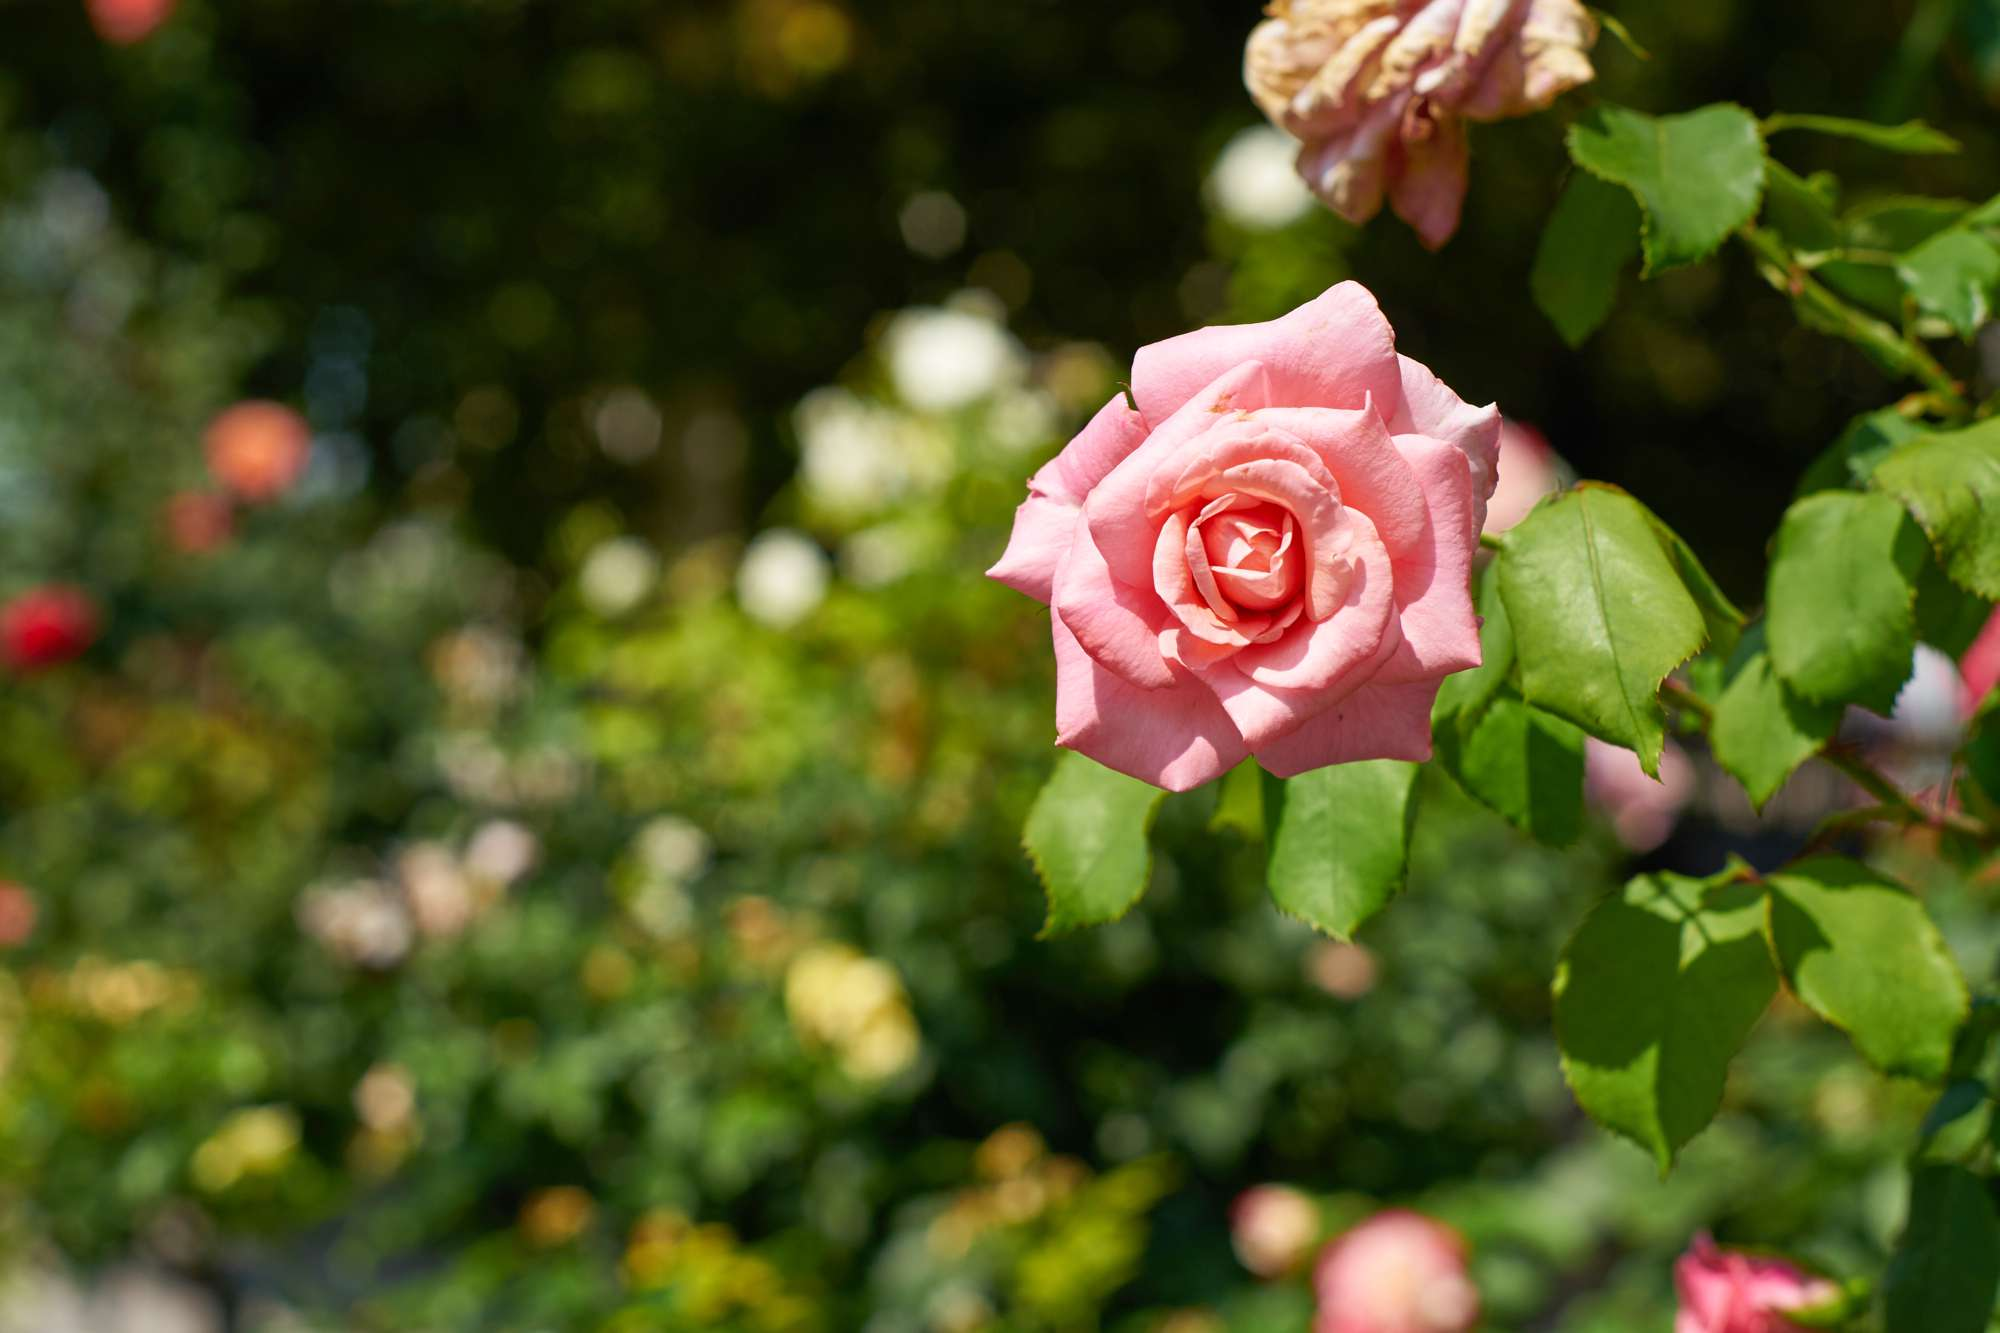 tight focus shot of pink rose in bloom with rose bushes in background